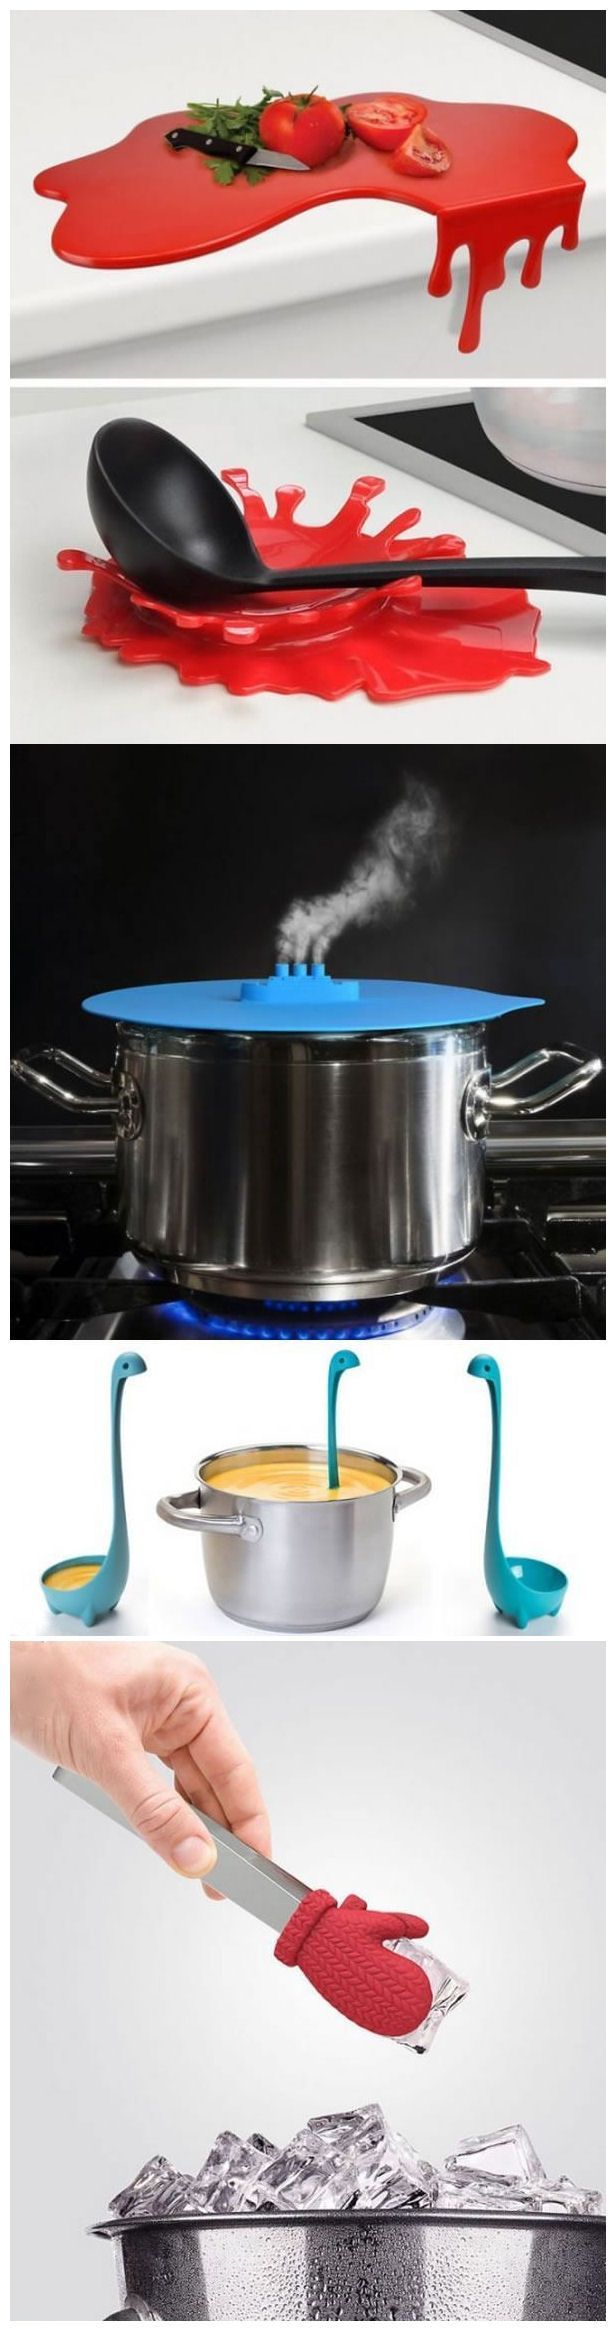 Cool & Clever Kitchen Gadgets ??? More (Electronics Gadgets Tech Gifts) #electronicgadgets